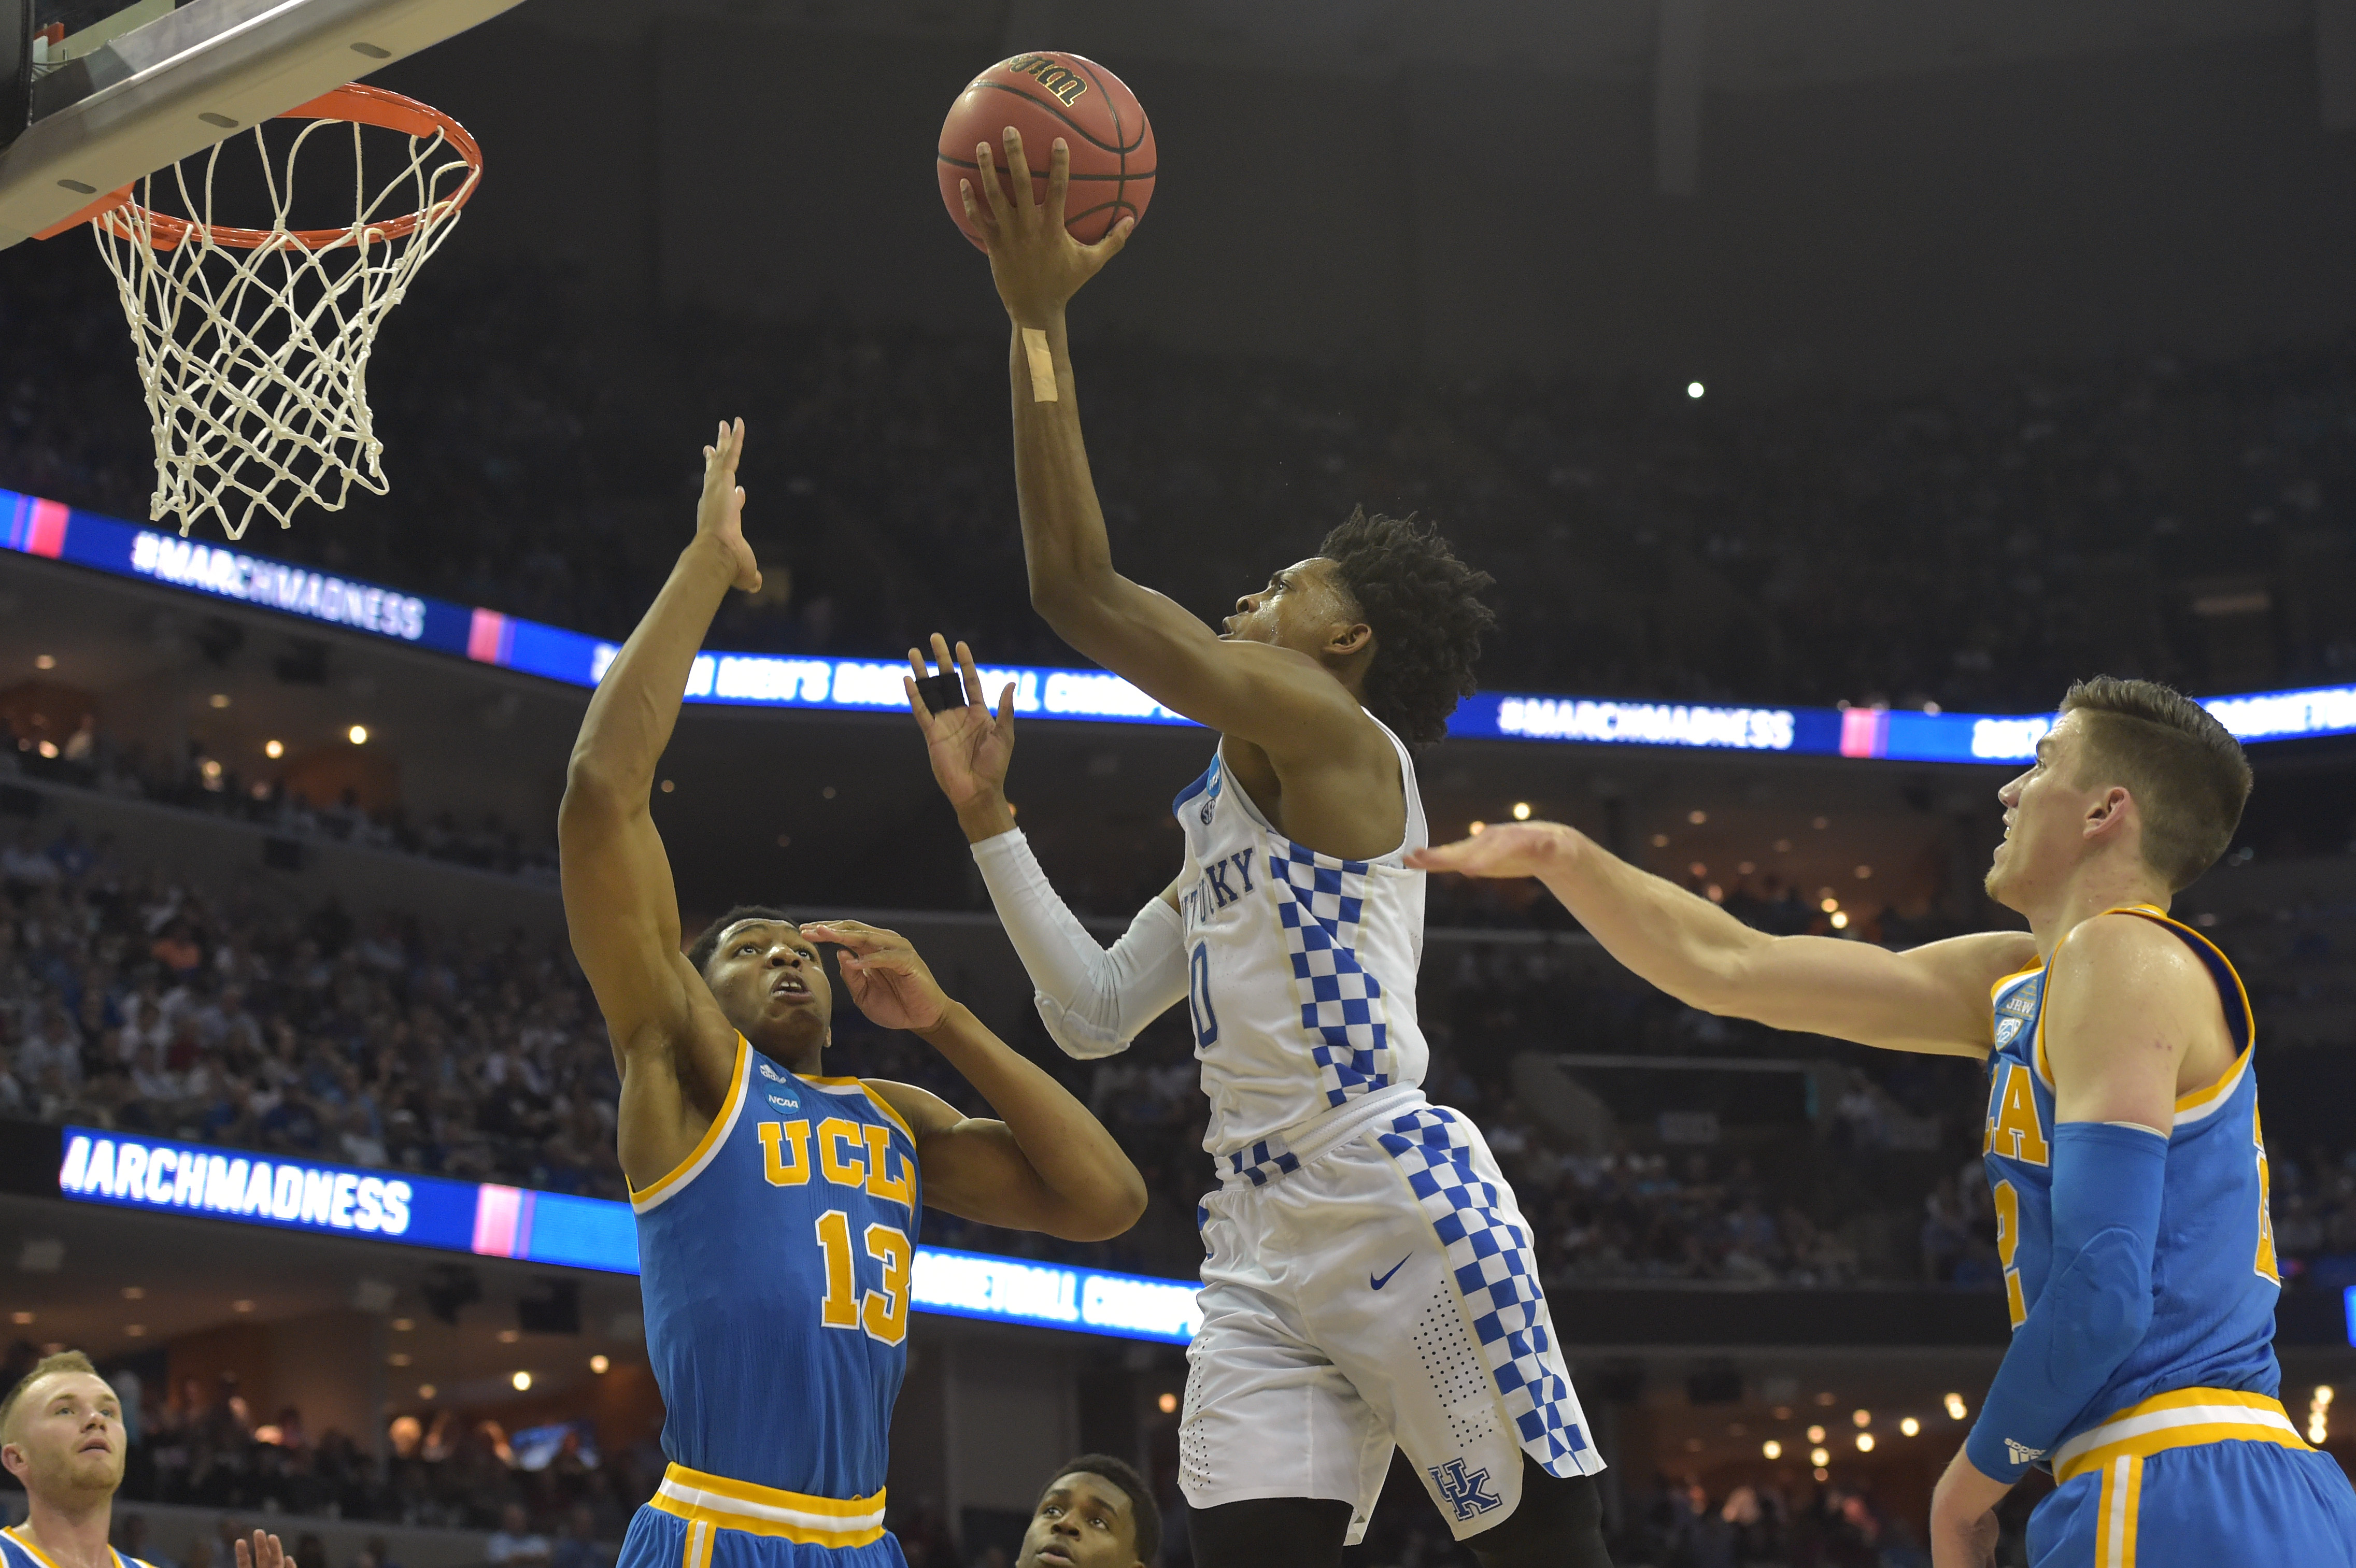 9969065-ncaa-basketball-ncaa-tournament-south-regional-kentucky-vs-ucla